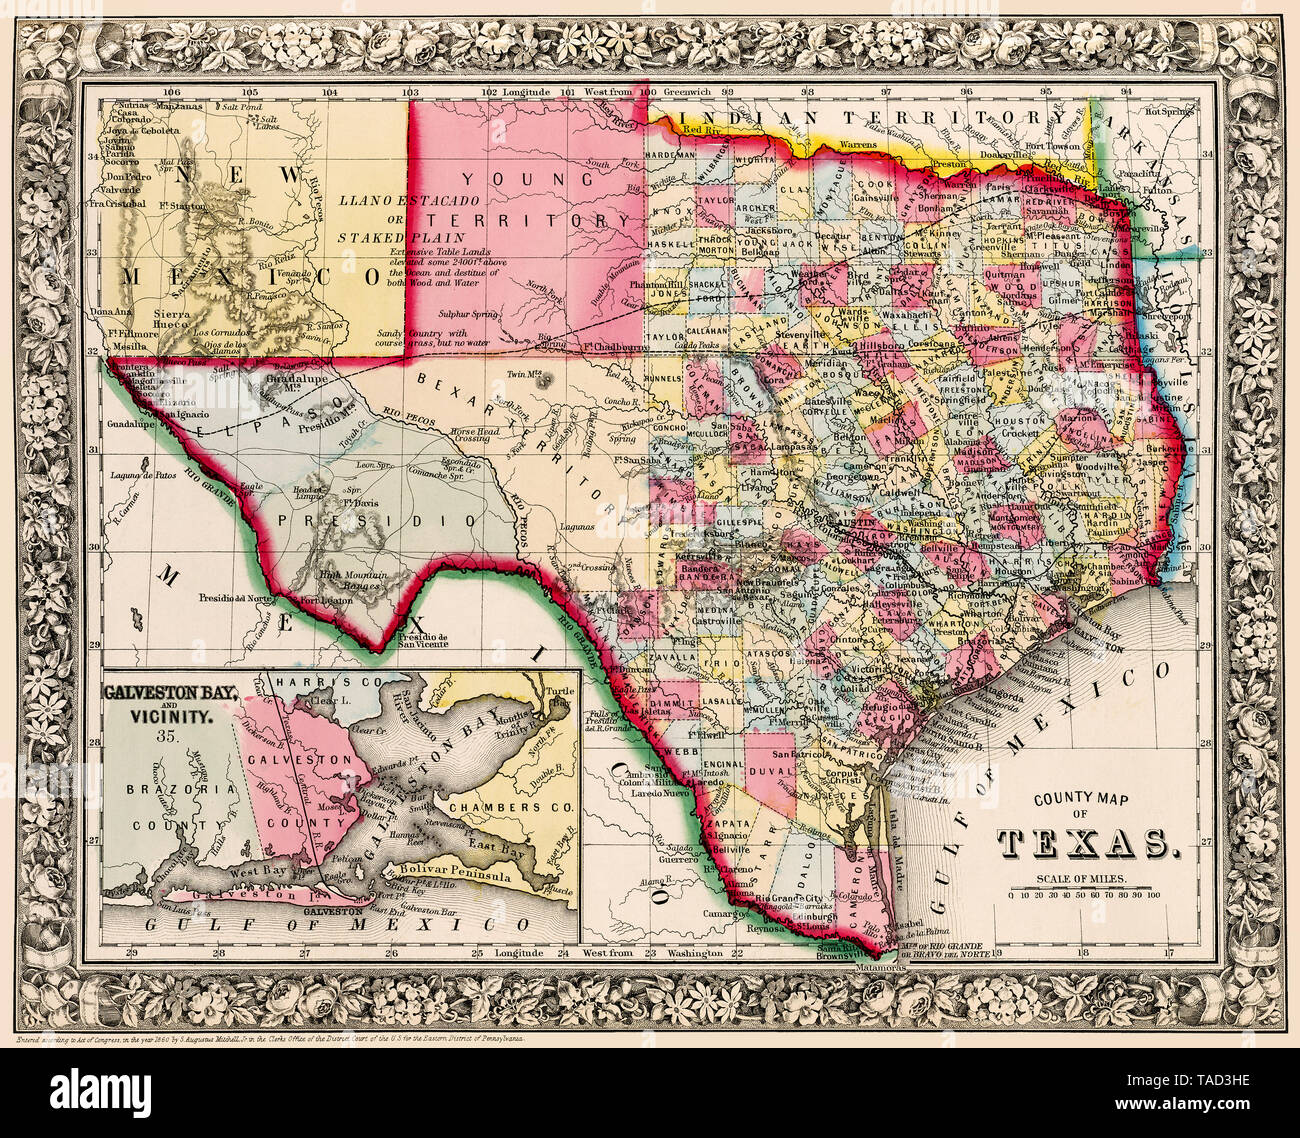 Map Of Texas Showing Counties.Antique And Detailed Historical Map Of Texas Noting Counties In 1963